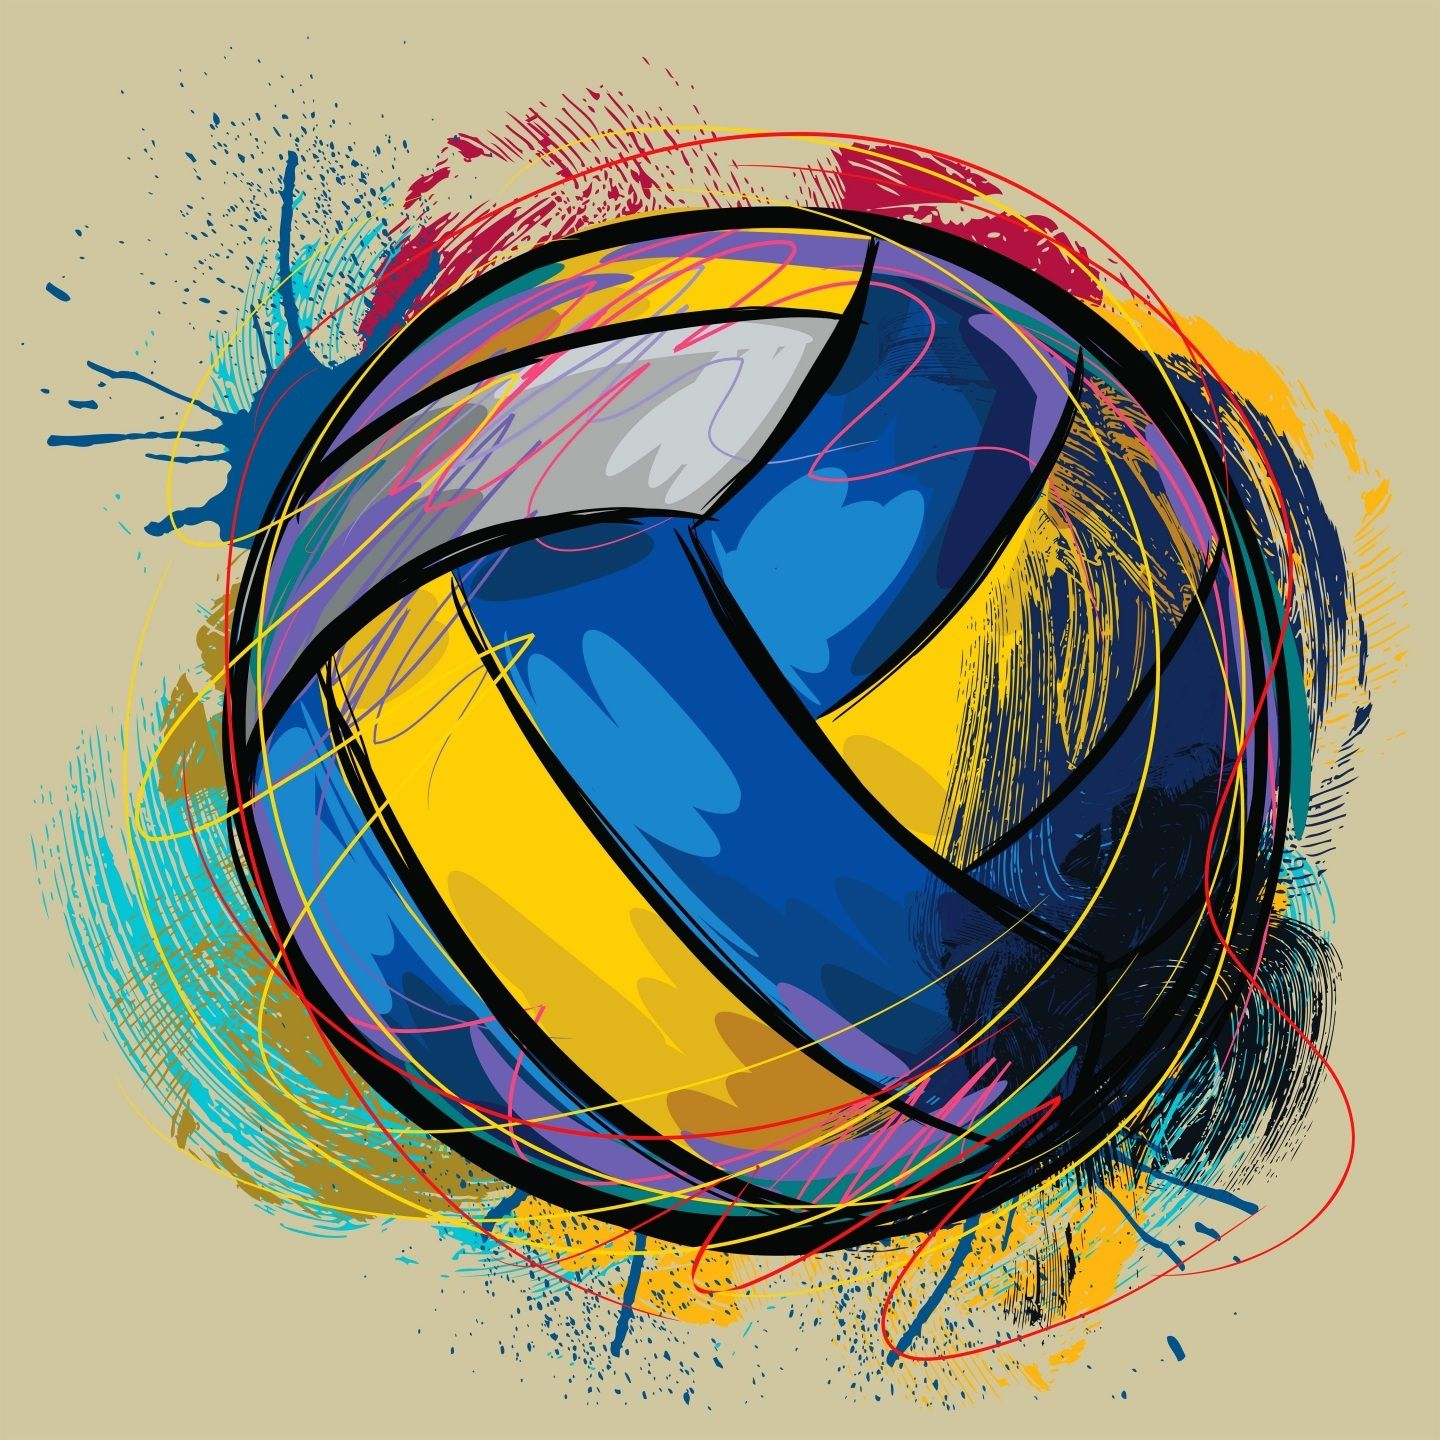 Volleyball Wallpaper For Desktop